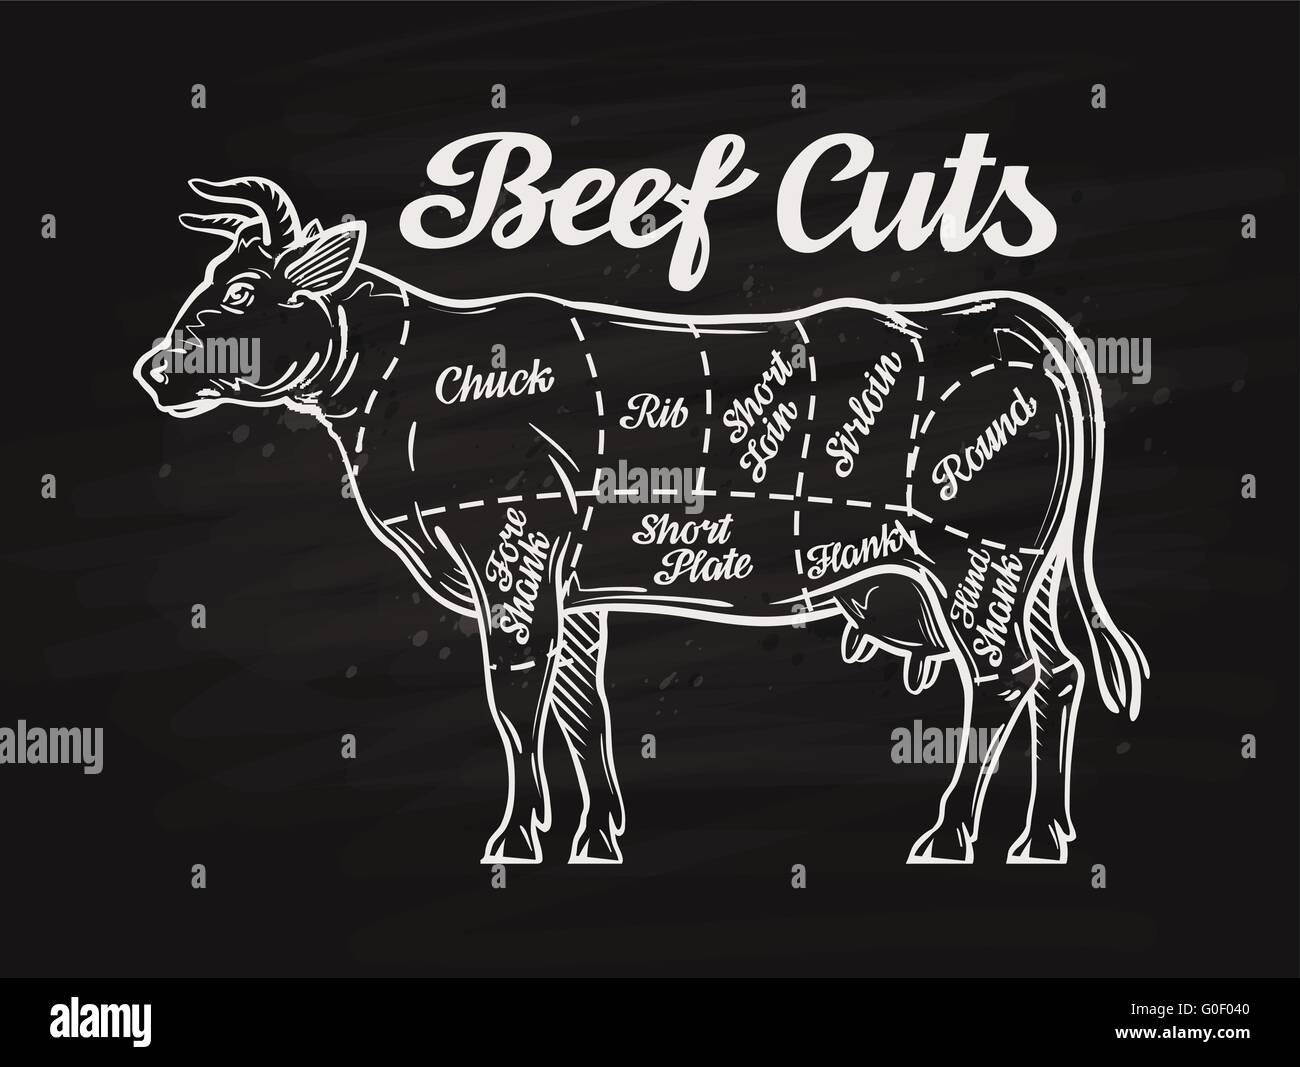 beef cuts drawing stock photos beef cuts drawing stock images alamy